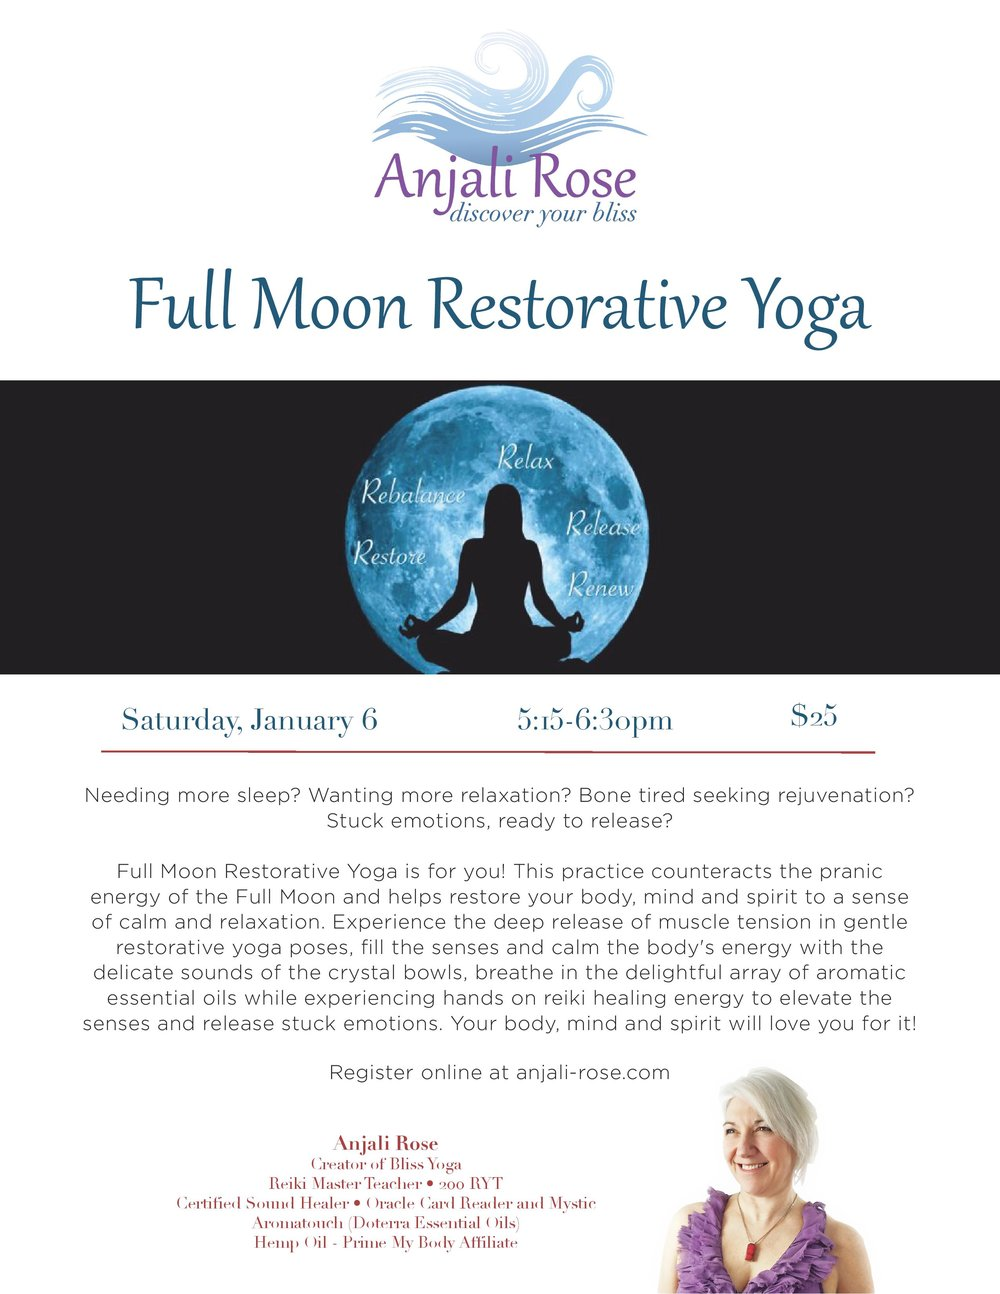 AR_Full Moon Restorative Yoga_Poster-page-001.jpg